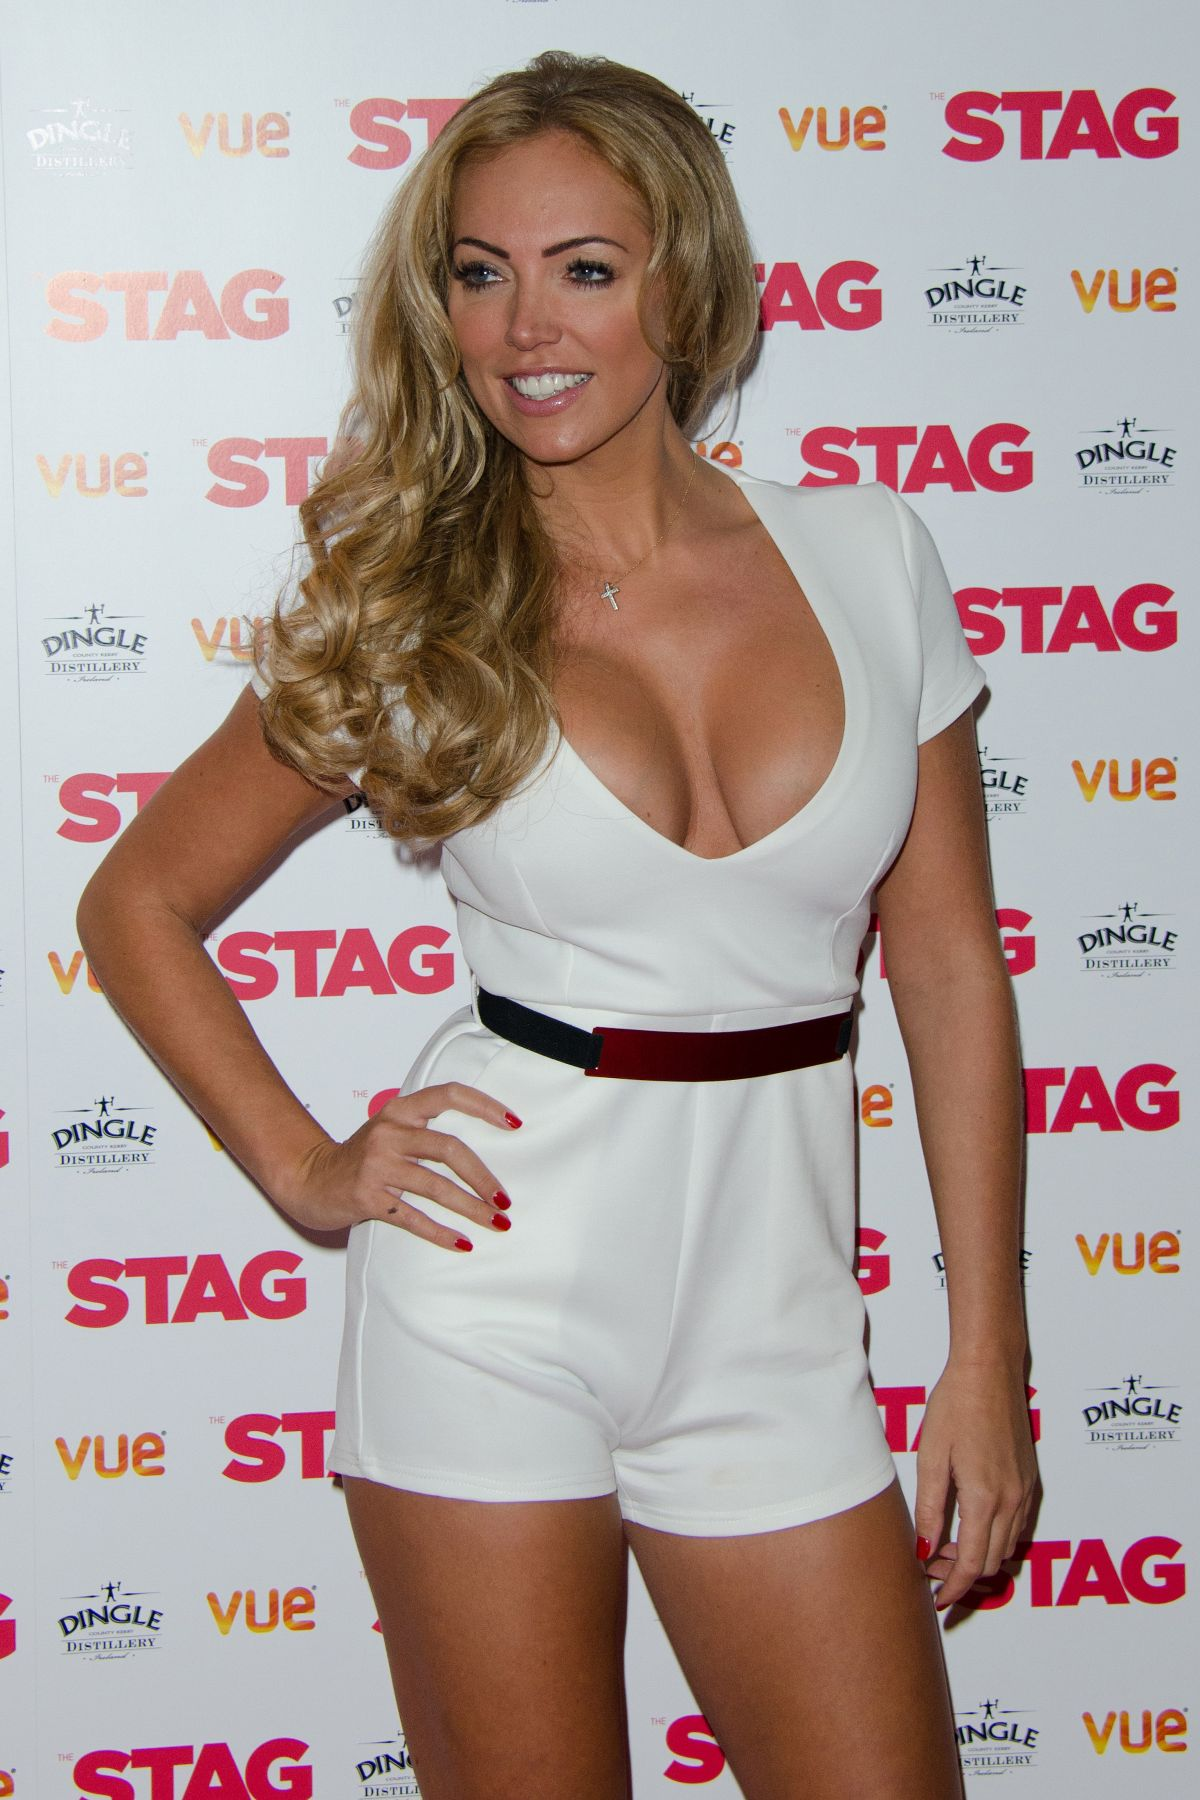 Aisleyne Horgan-Wallace Nude Photos 13